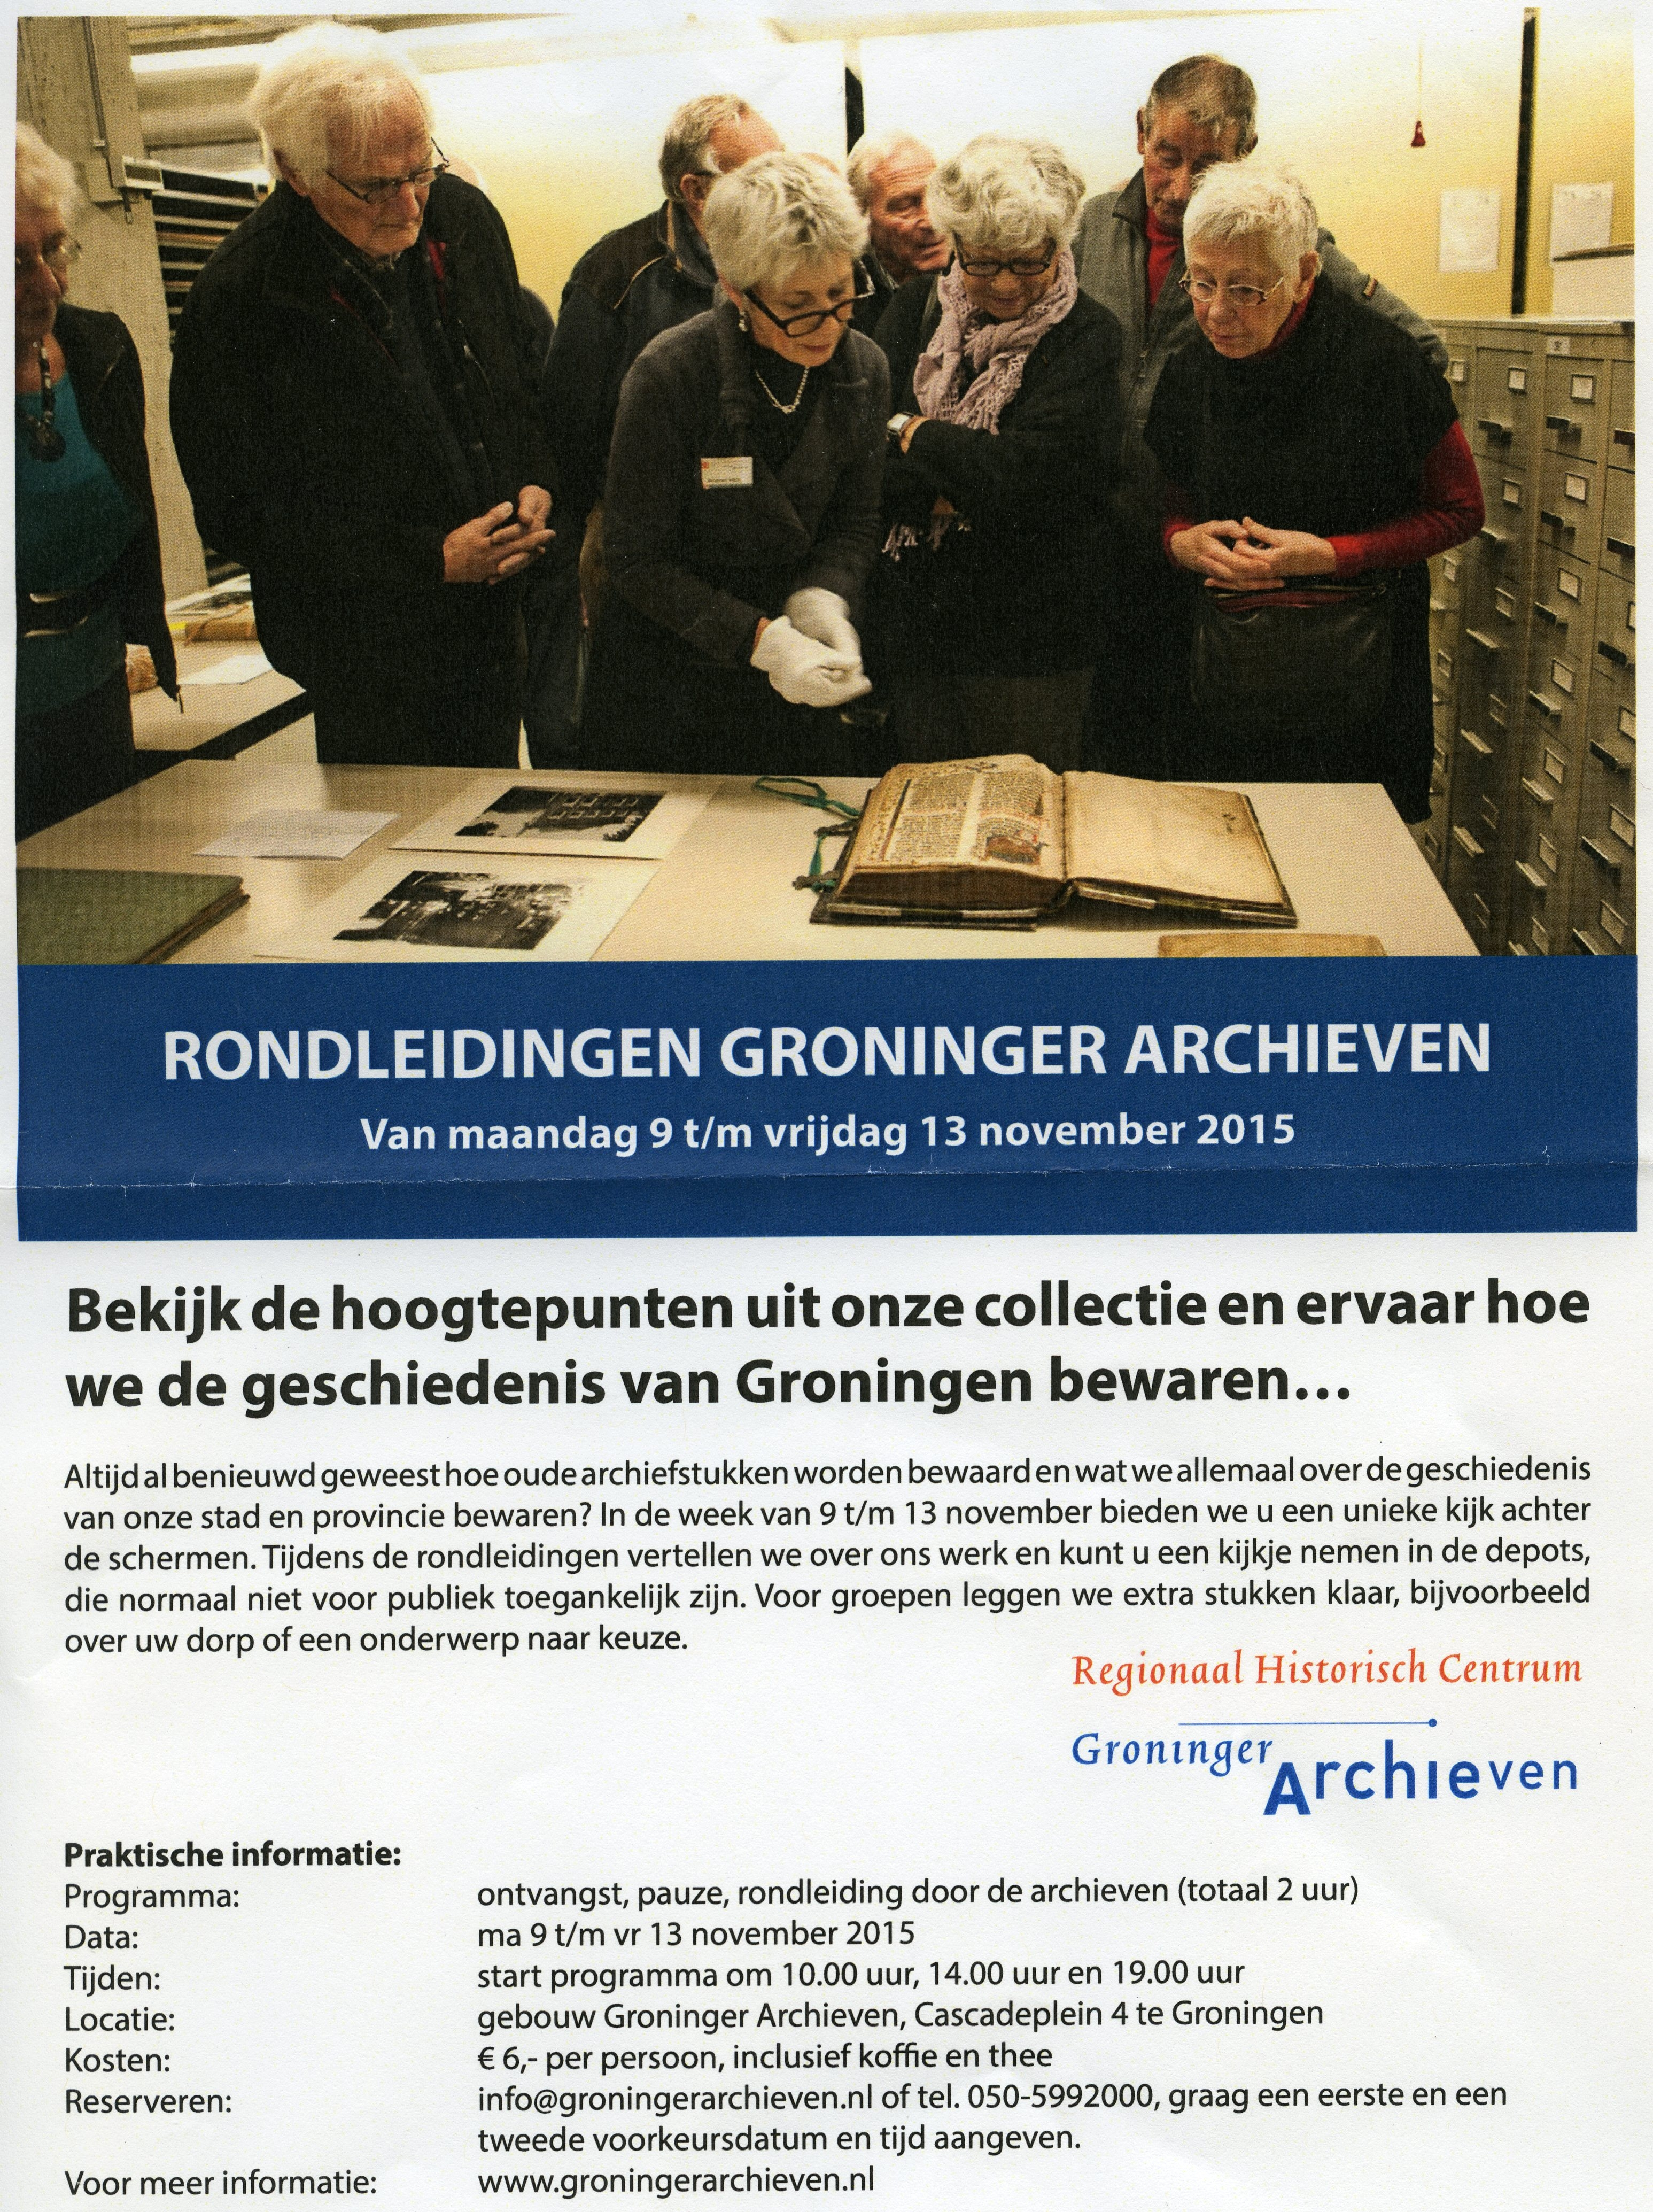 Groninger Archieven